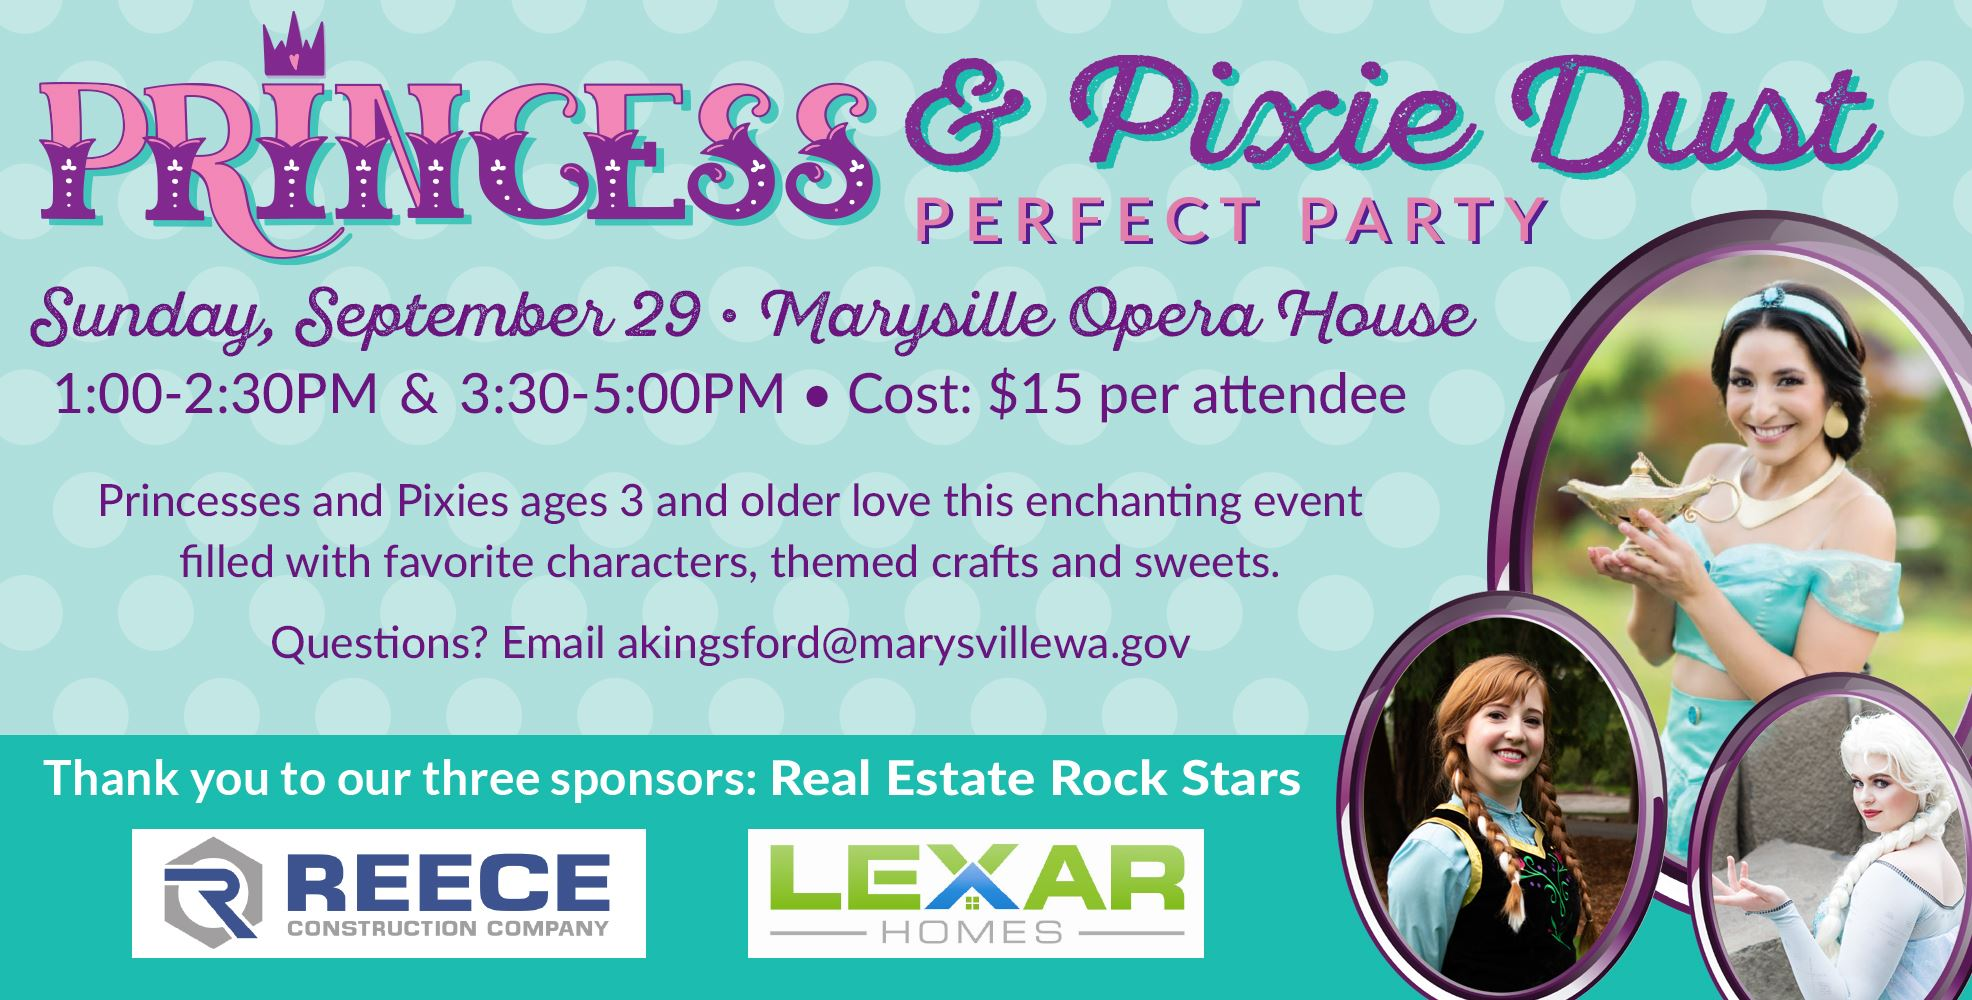 Princess & Pixie Dust Perfect Party, September 29